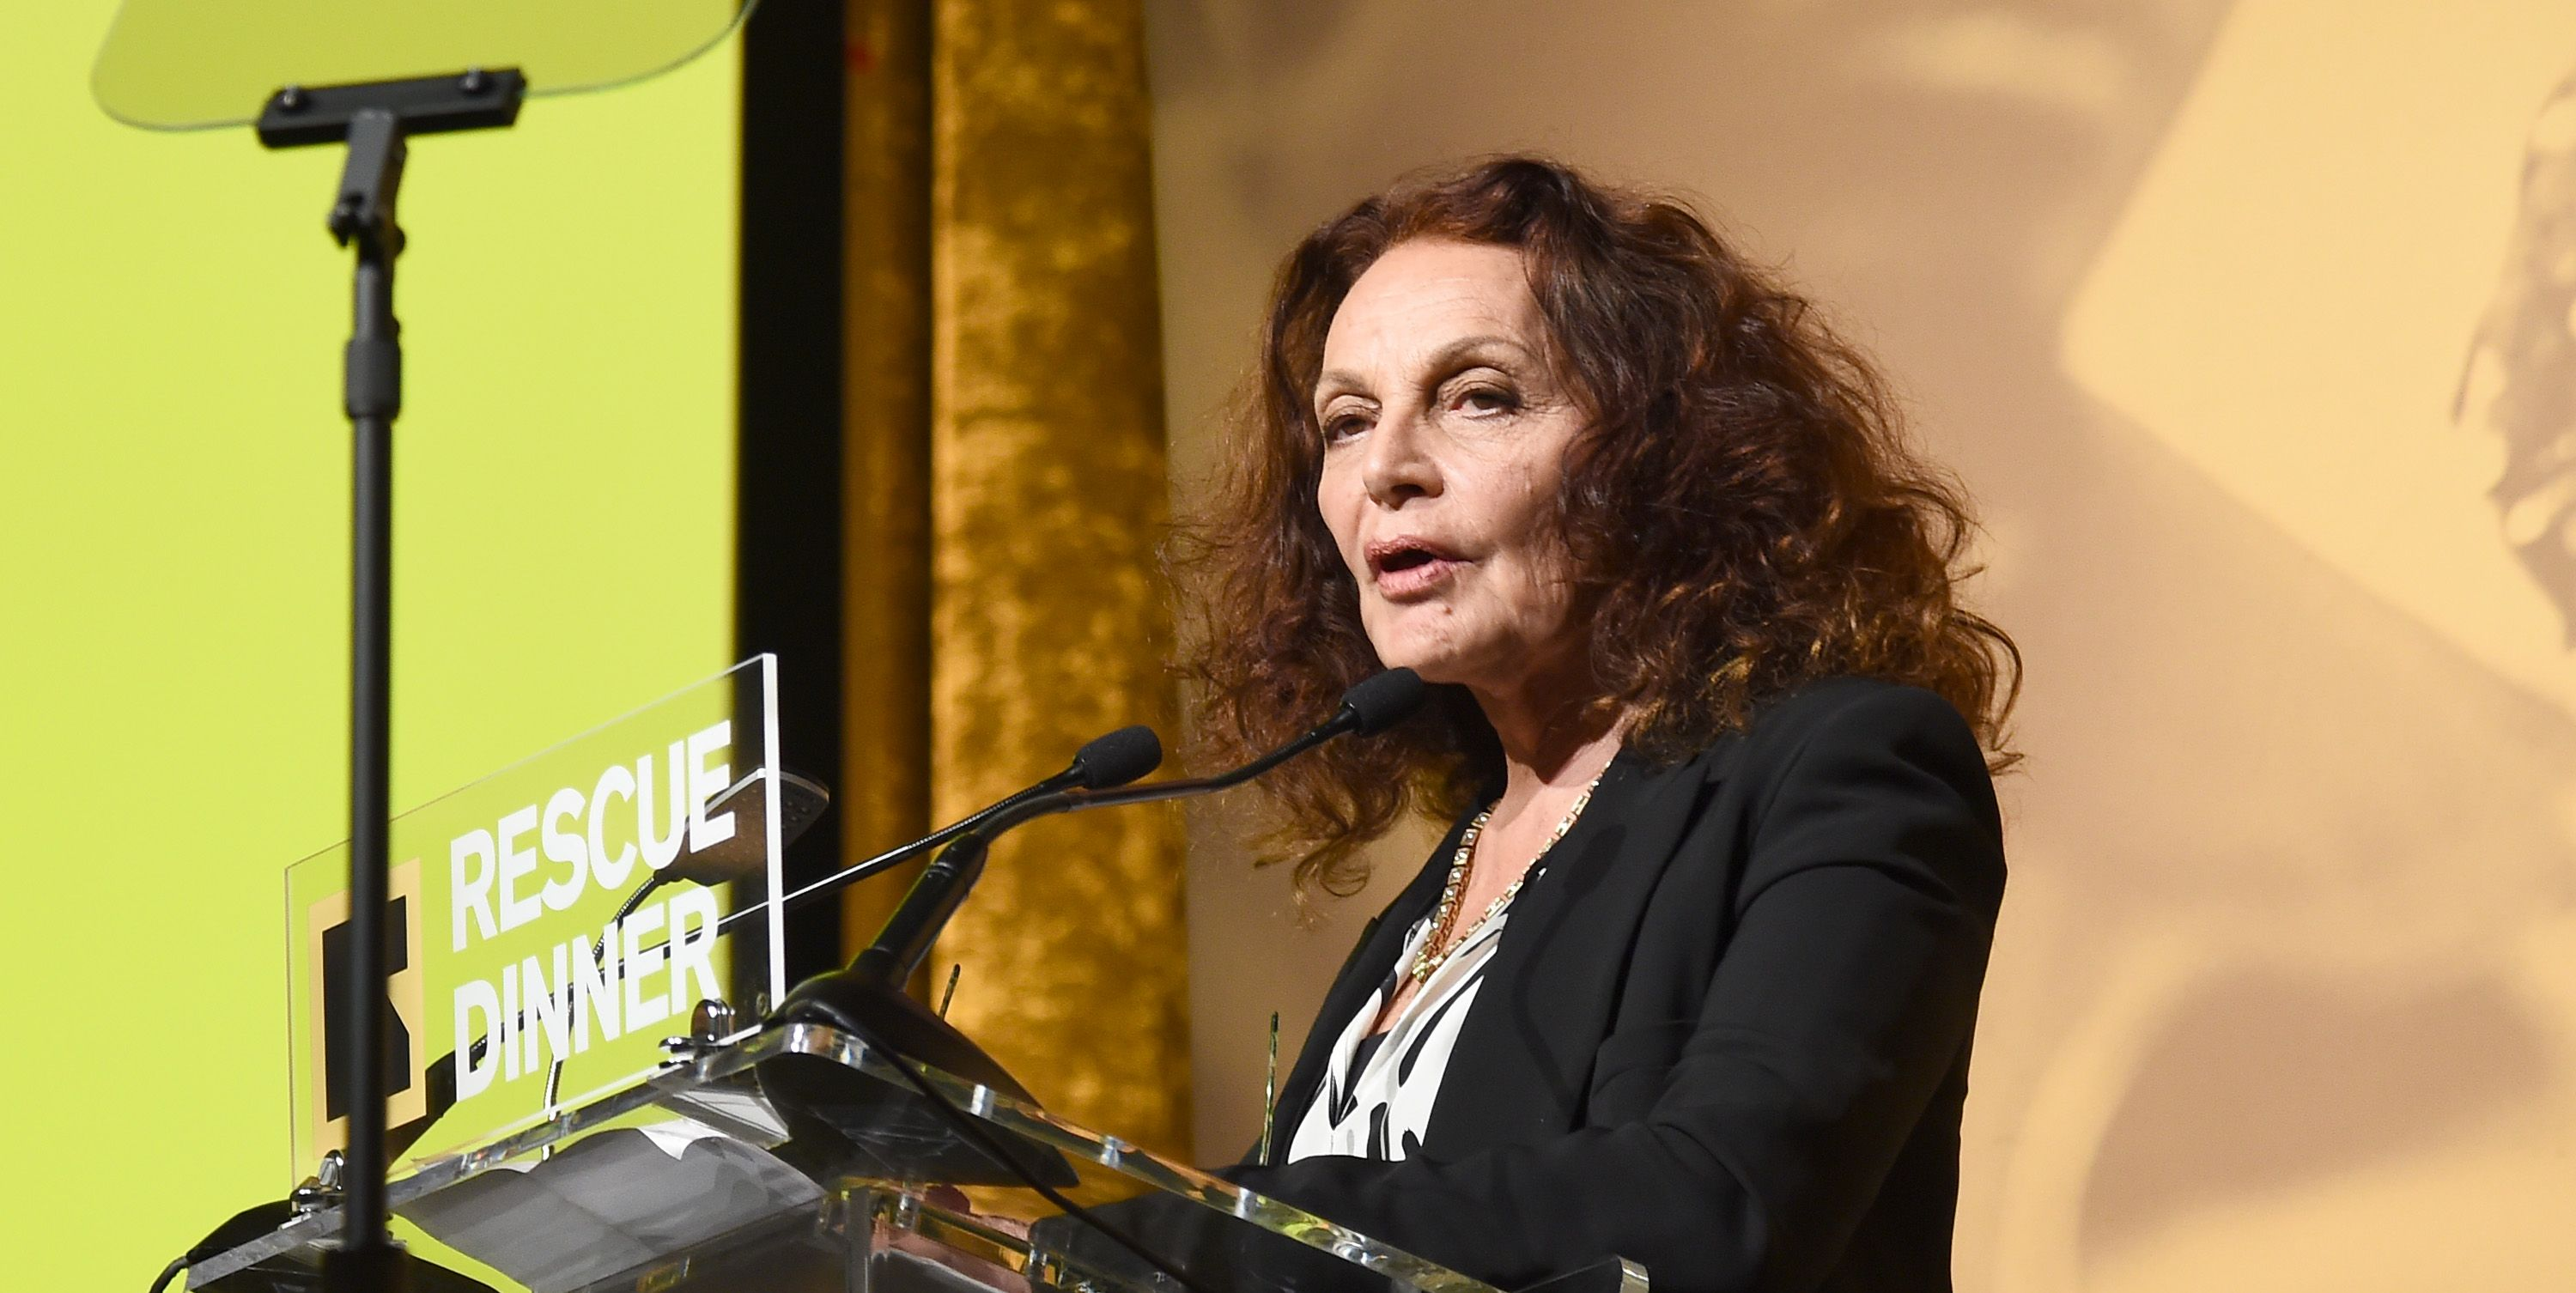 Fashion designer and philanthropist Diane von Furstenberg and BlackRock Chairman and CEO Larry Fink were honored on November 1 at the International Rescue Committee's annual Rescue Dinner Benefit. The evening, which raised $16.8 million to support IRC's global humanitarian work, was held at the New York Hilton Midtown and featured a musical performance by Broadway star Arianna Rosario.